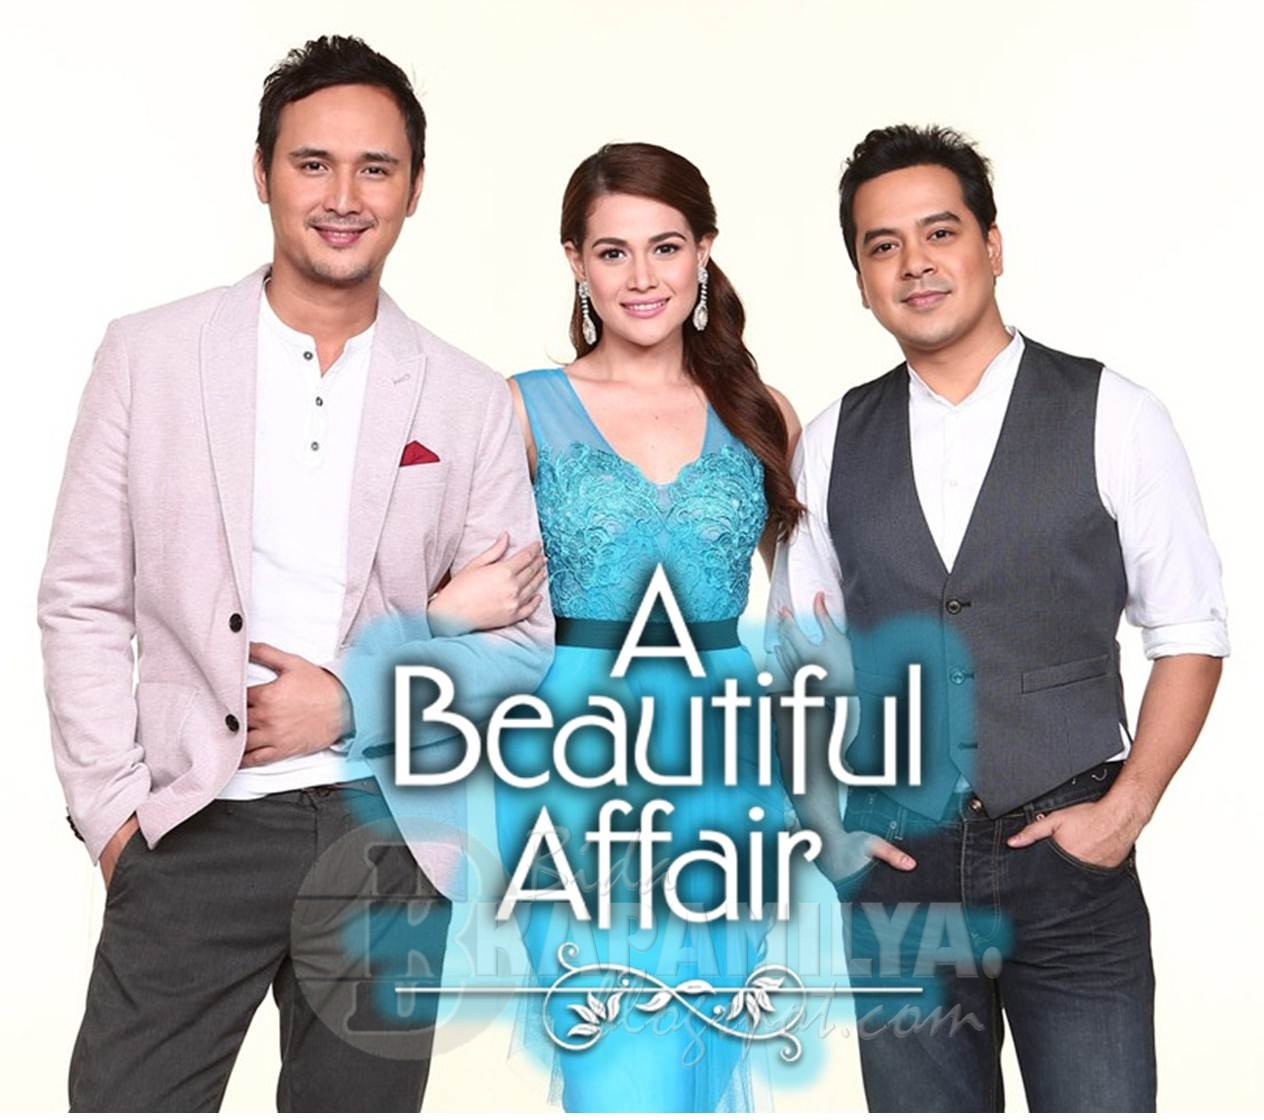 A BEAUTIFUL AFFAIR - NOV. 01, 2012 PART 4/4